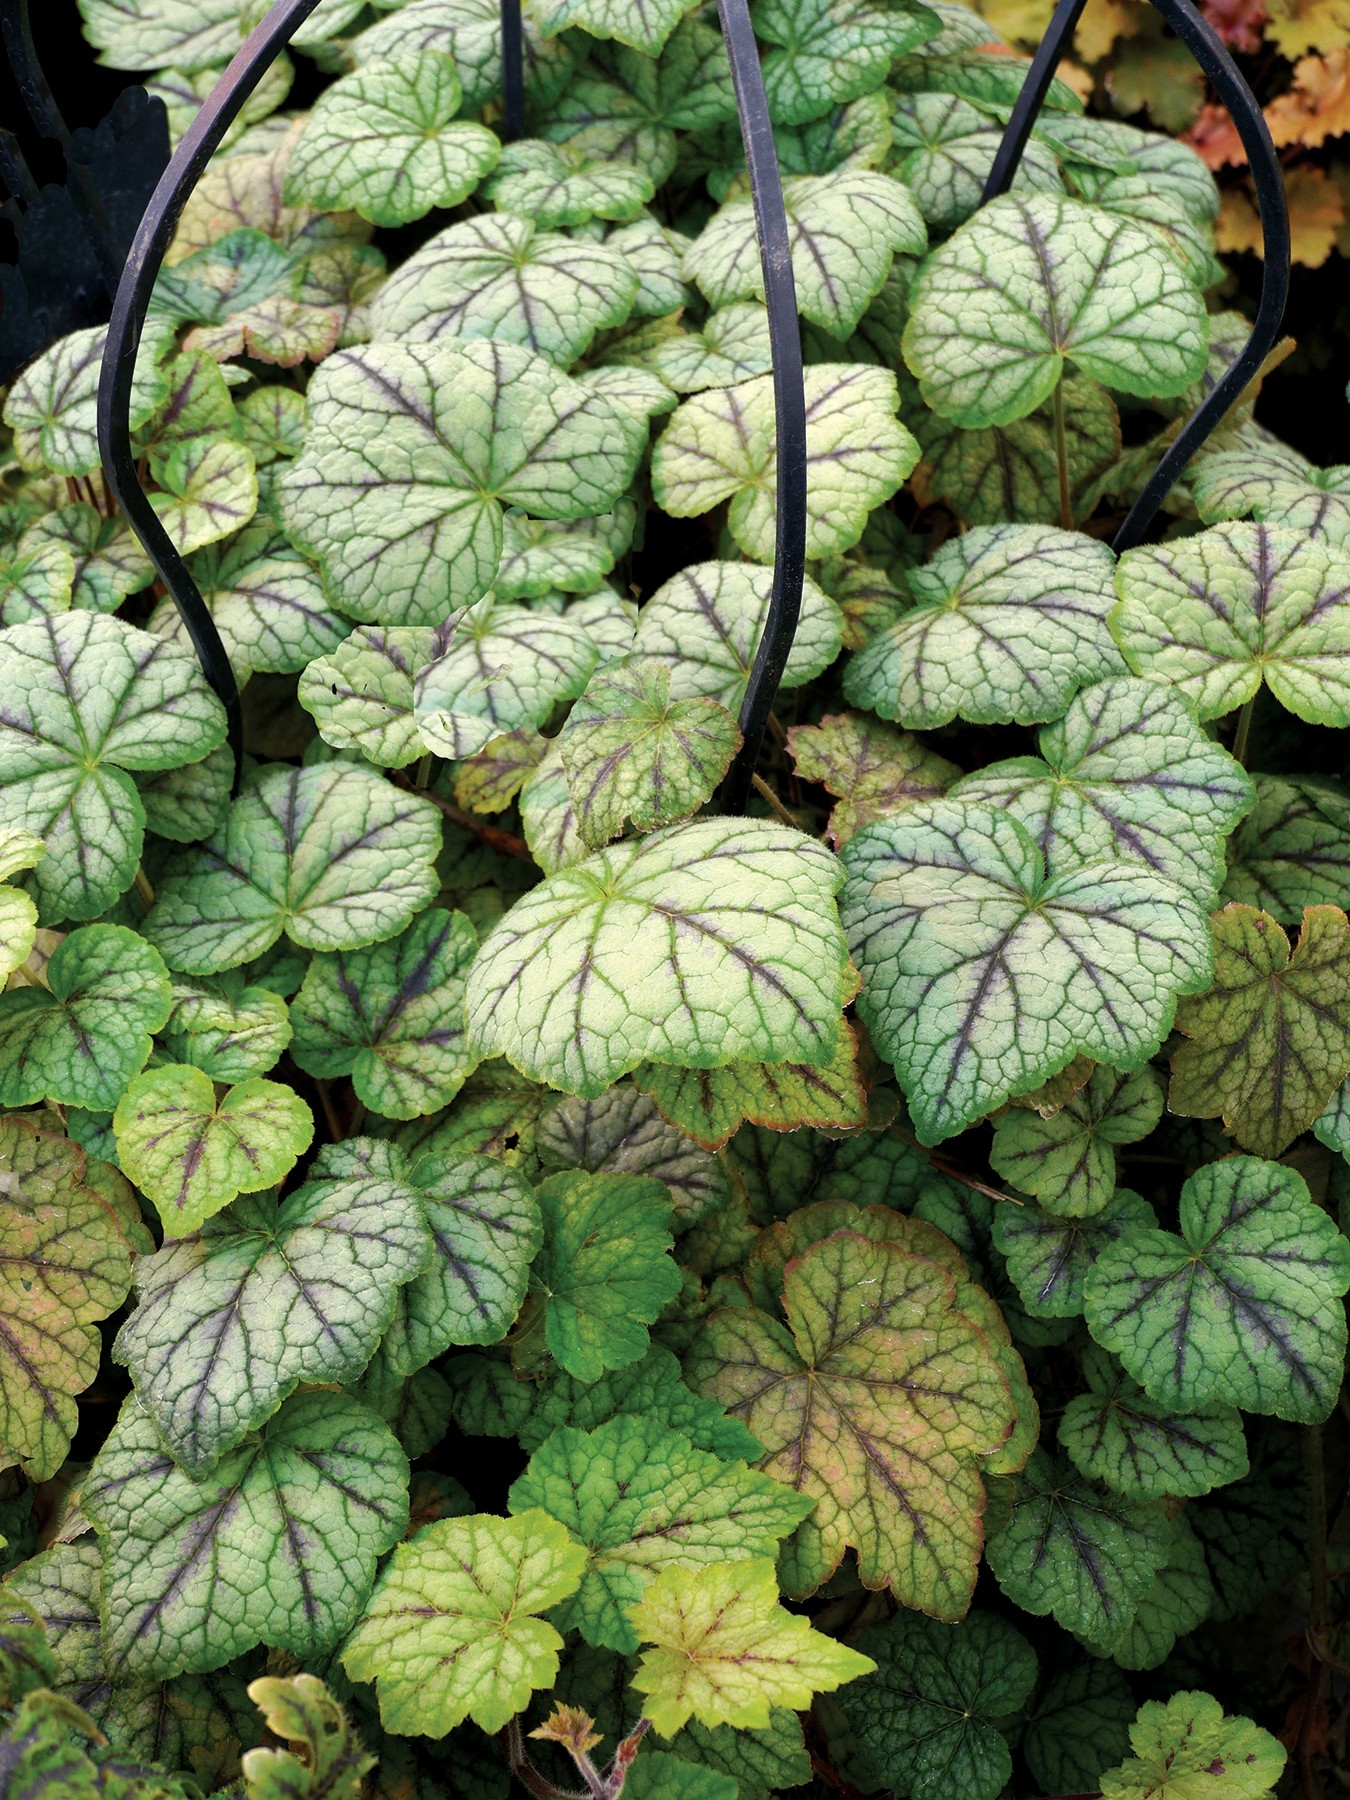 Heucherella 'Glacier Falls' features blue-green leaves and dark markings